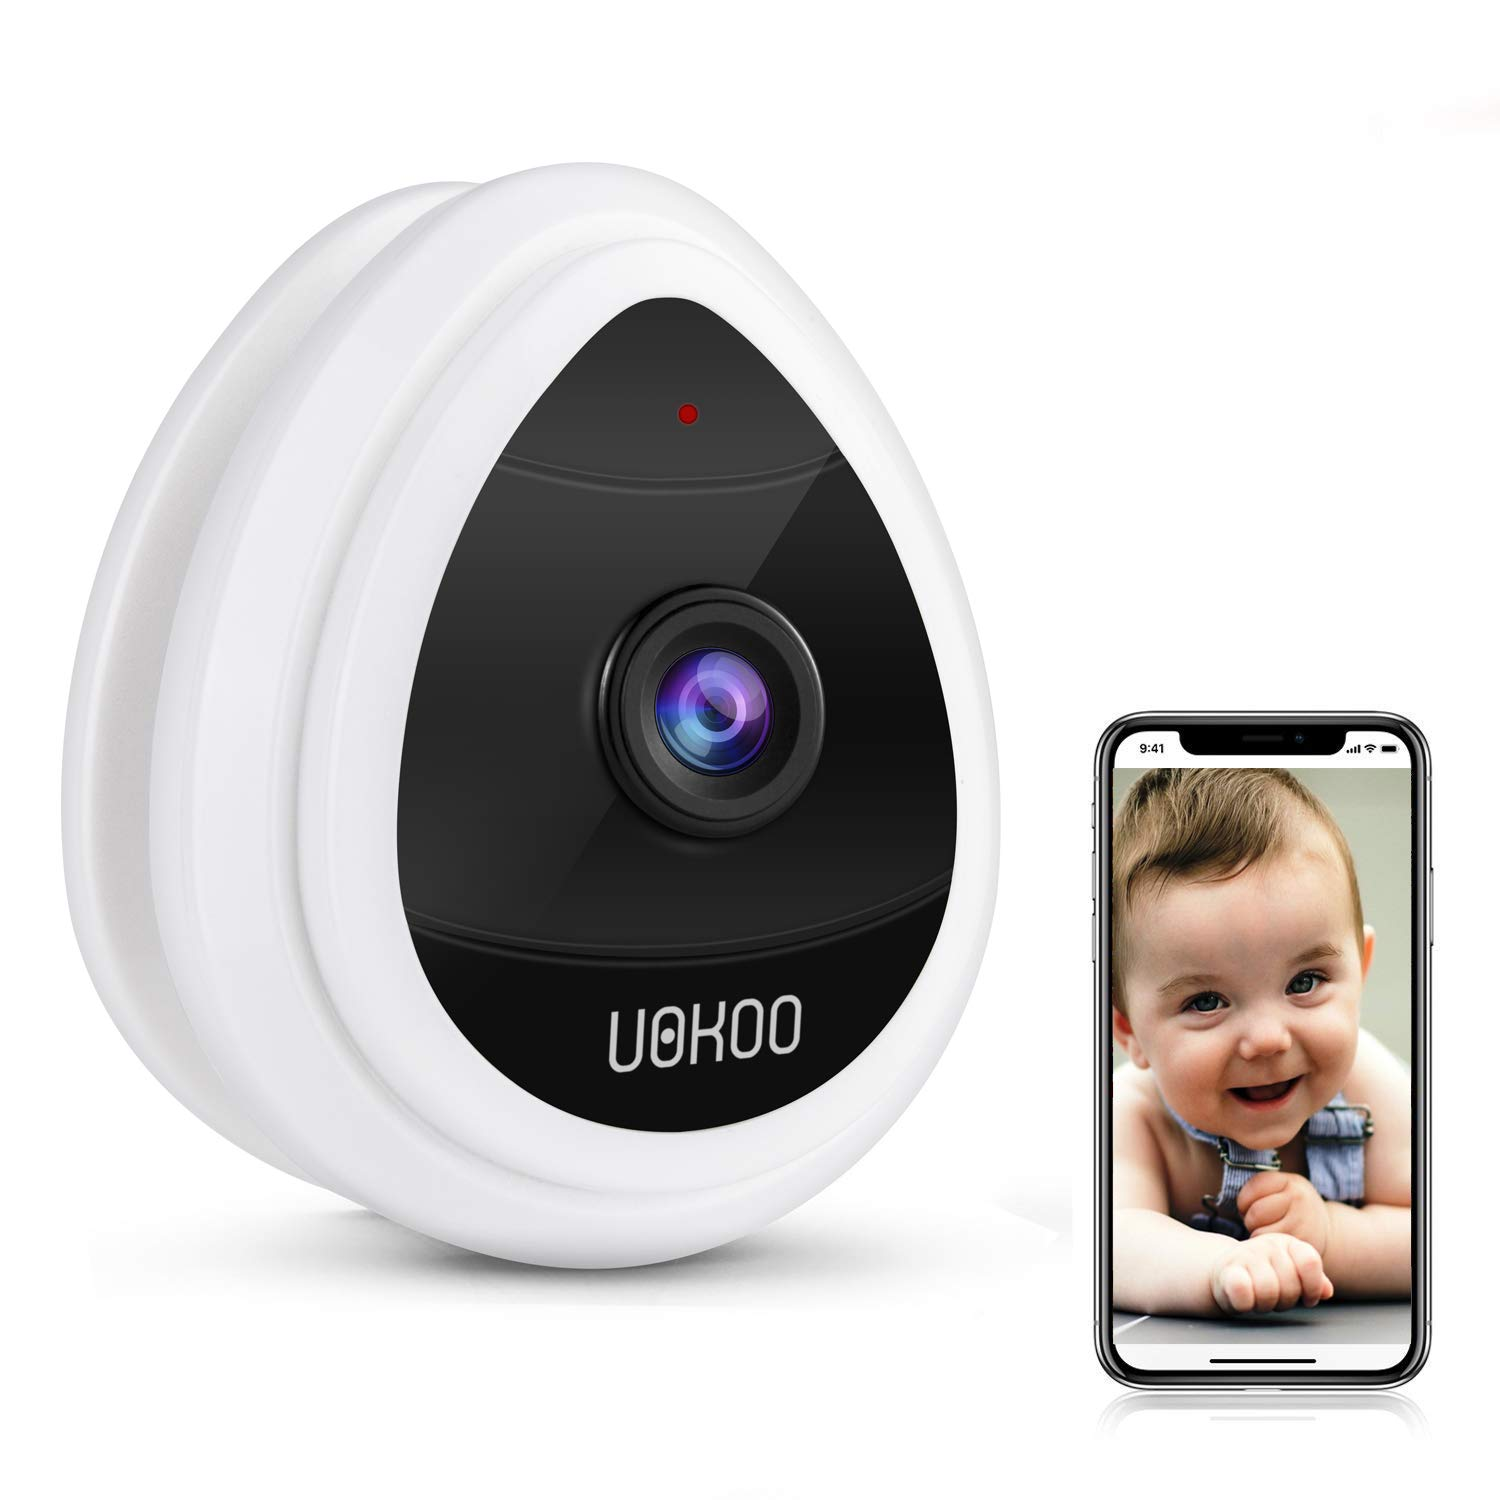 Mini IP Camera, Wifi Wireless Security Smart IP Camera Surveillance System Remote Monitoring with Motion Email Alert/Remote Monitoring For Pet Baby Elder Pet Nanny Monitor by UOKOO